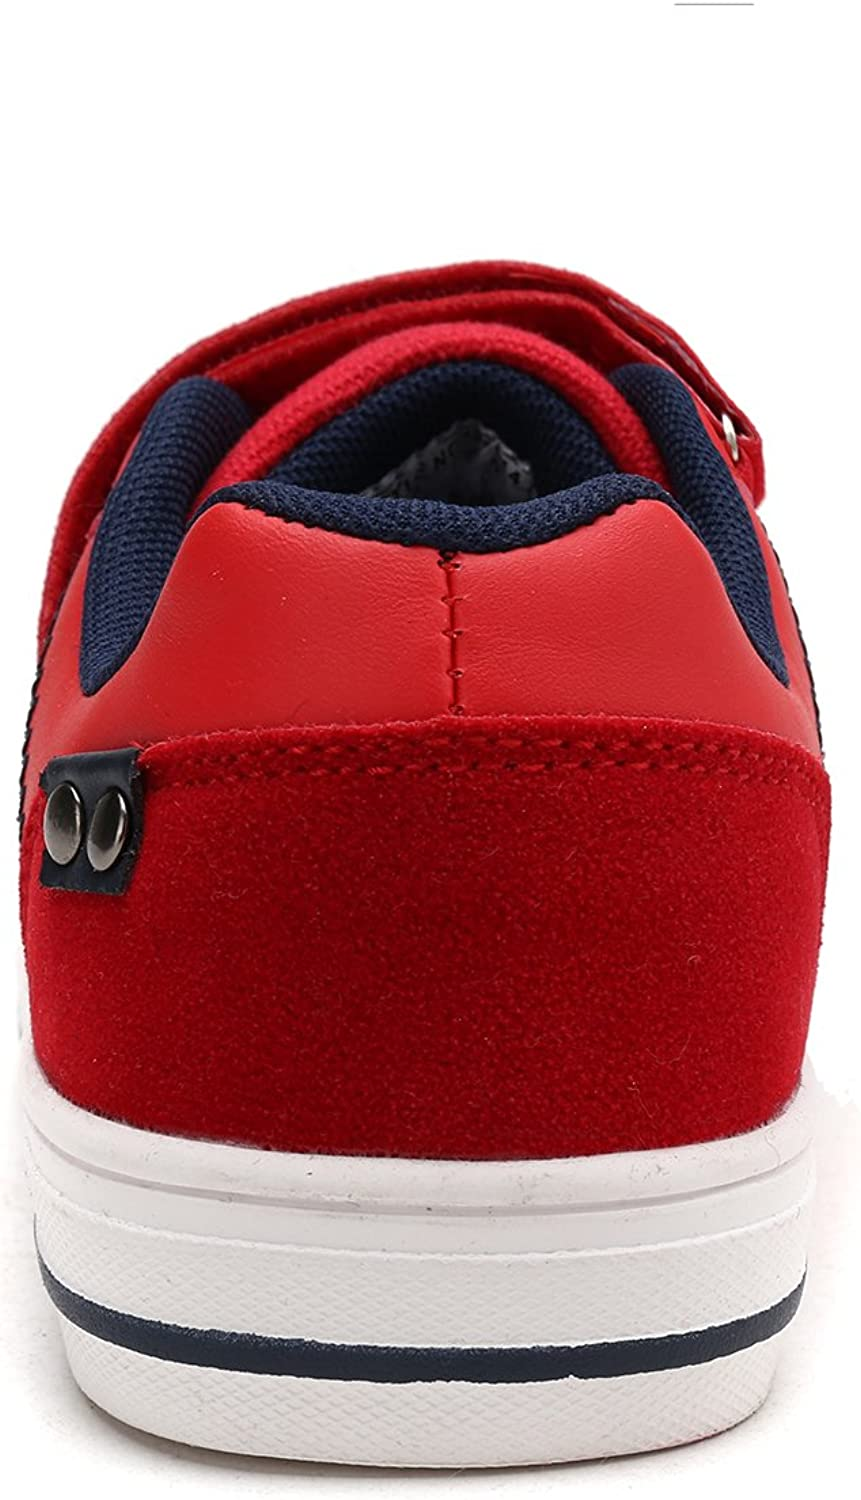 DREAM PAIRS Toddler Boys 151014-K Red Navy School Loafers Sneakers Shoes 6 M US Toddler